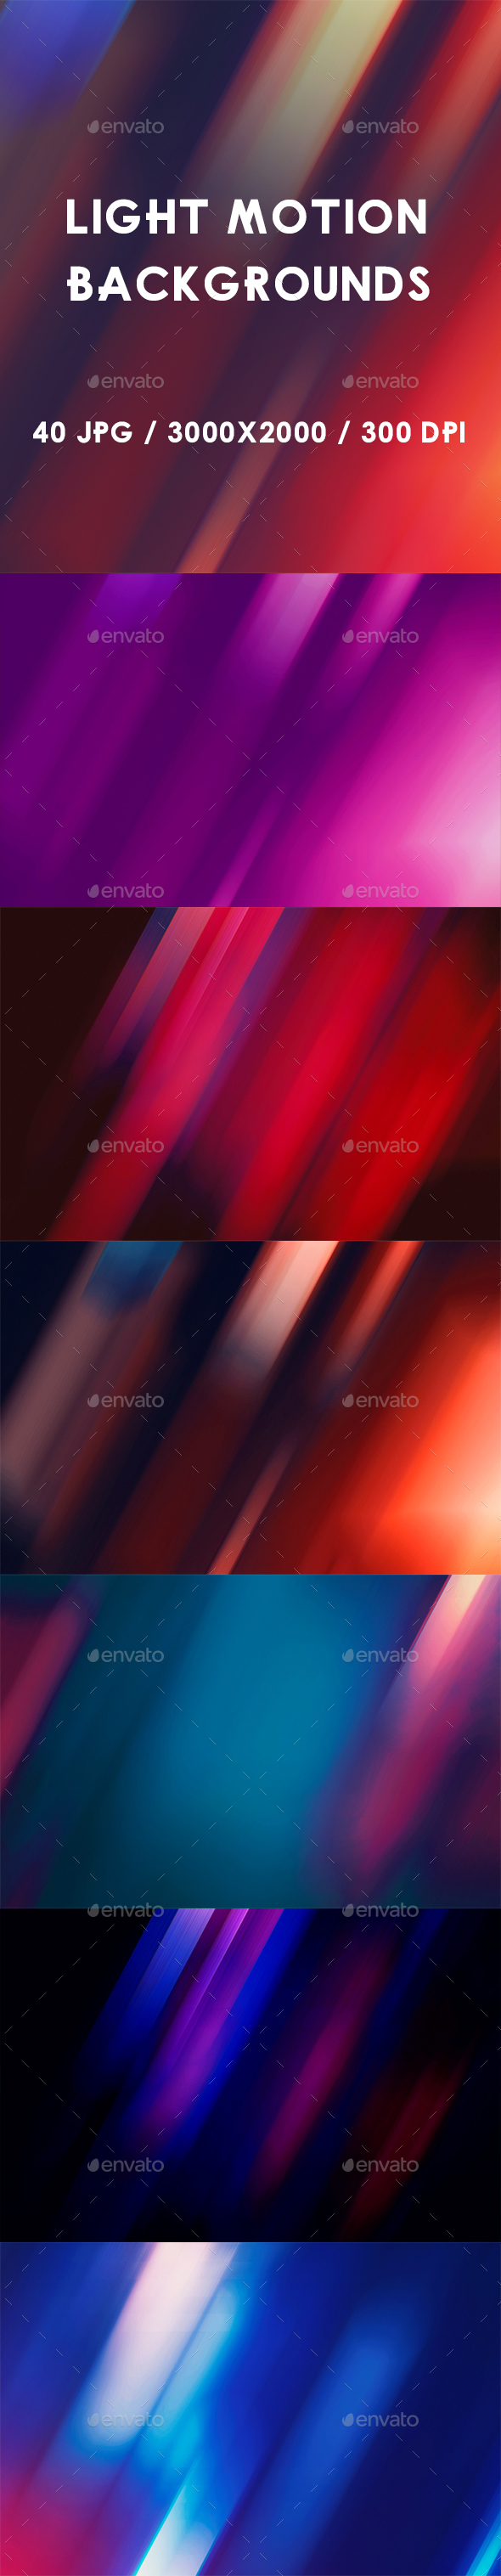 40 Light Motion Backgrounds - Abstract Backgrounds